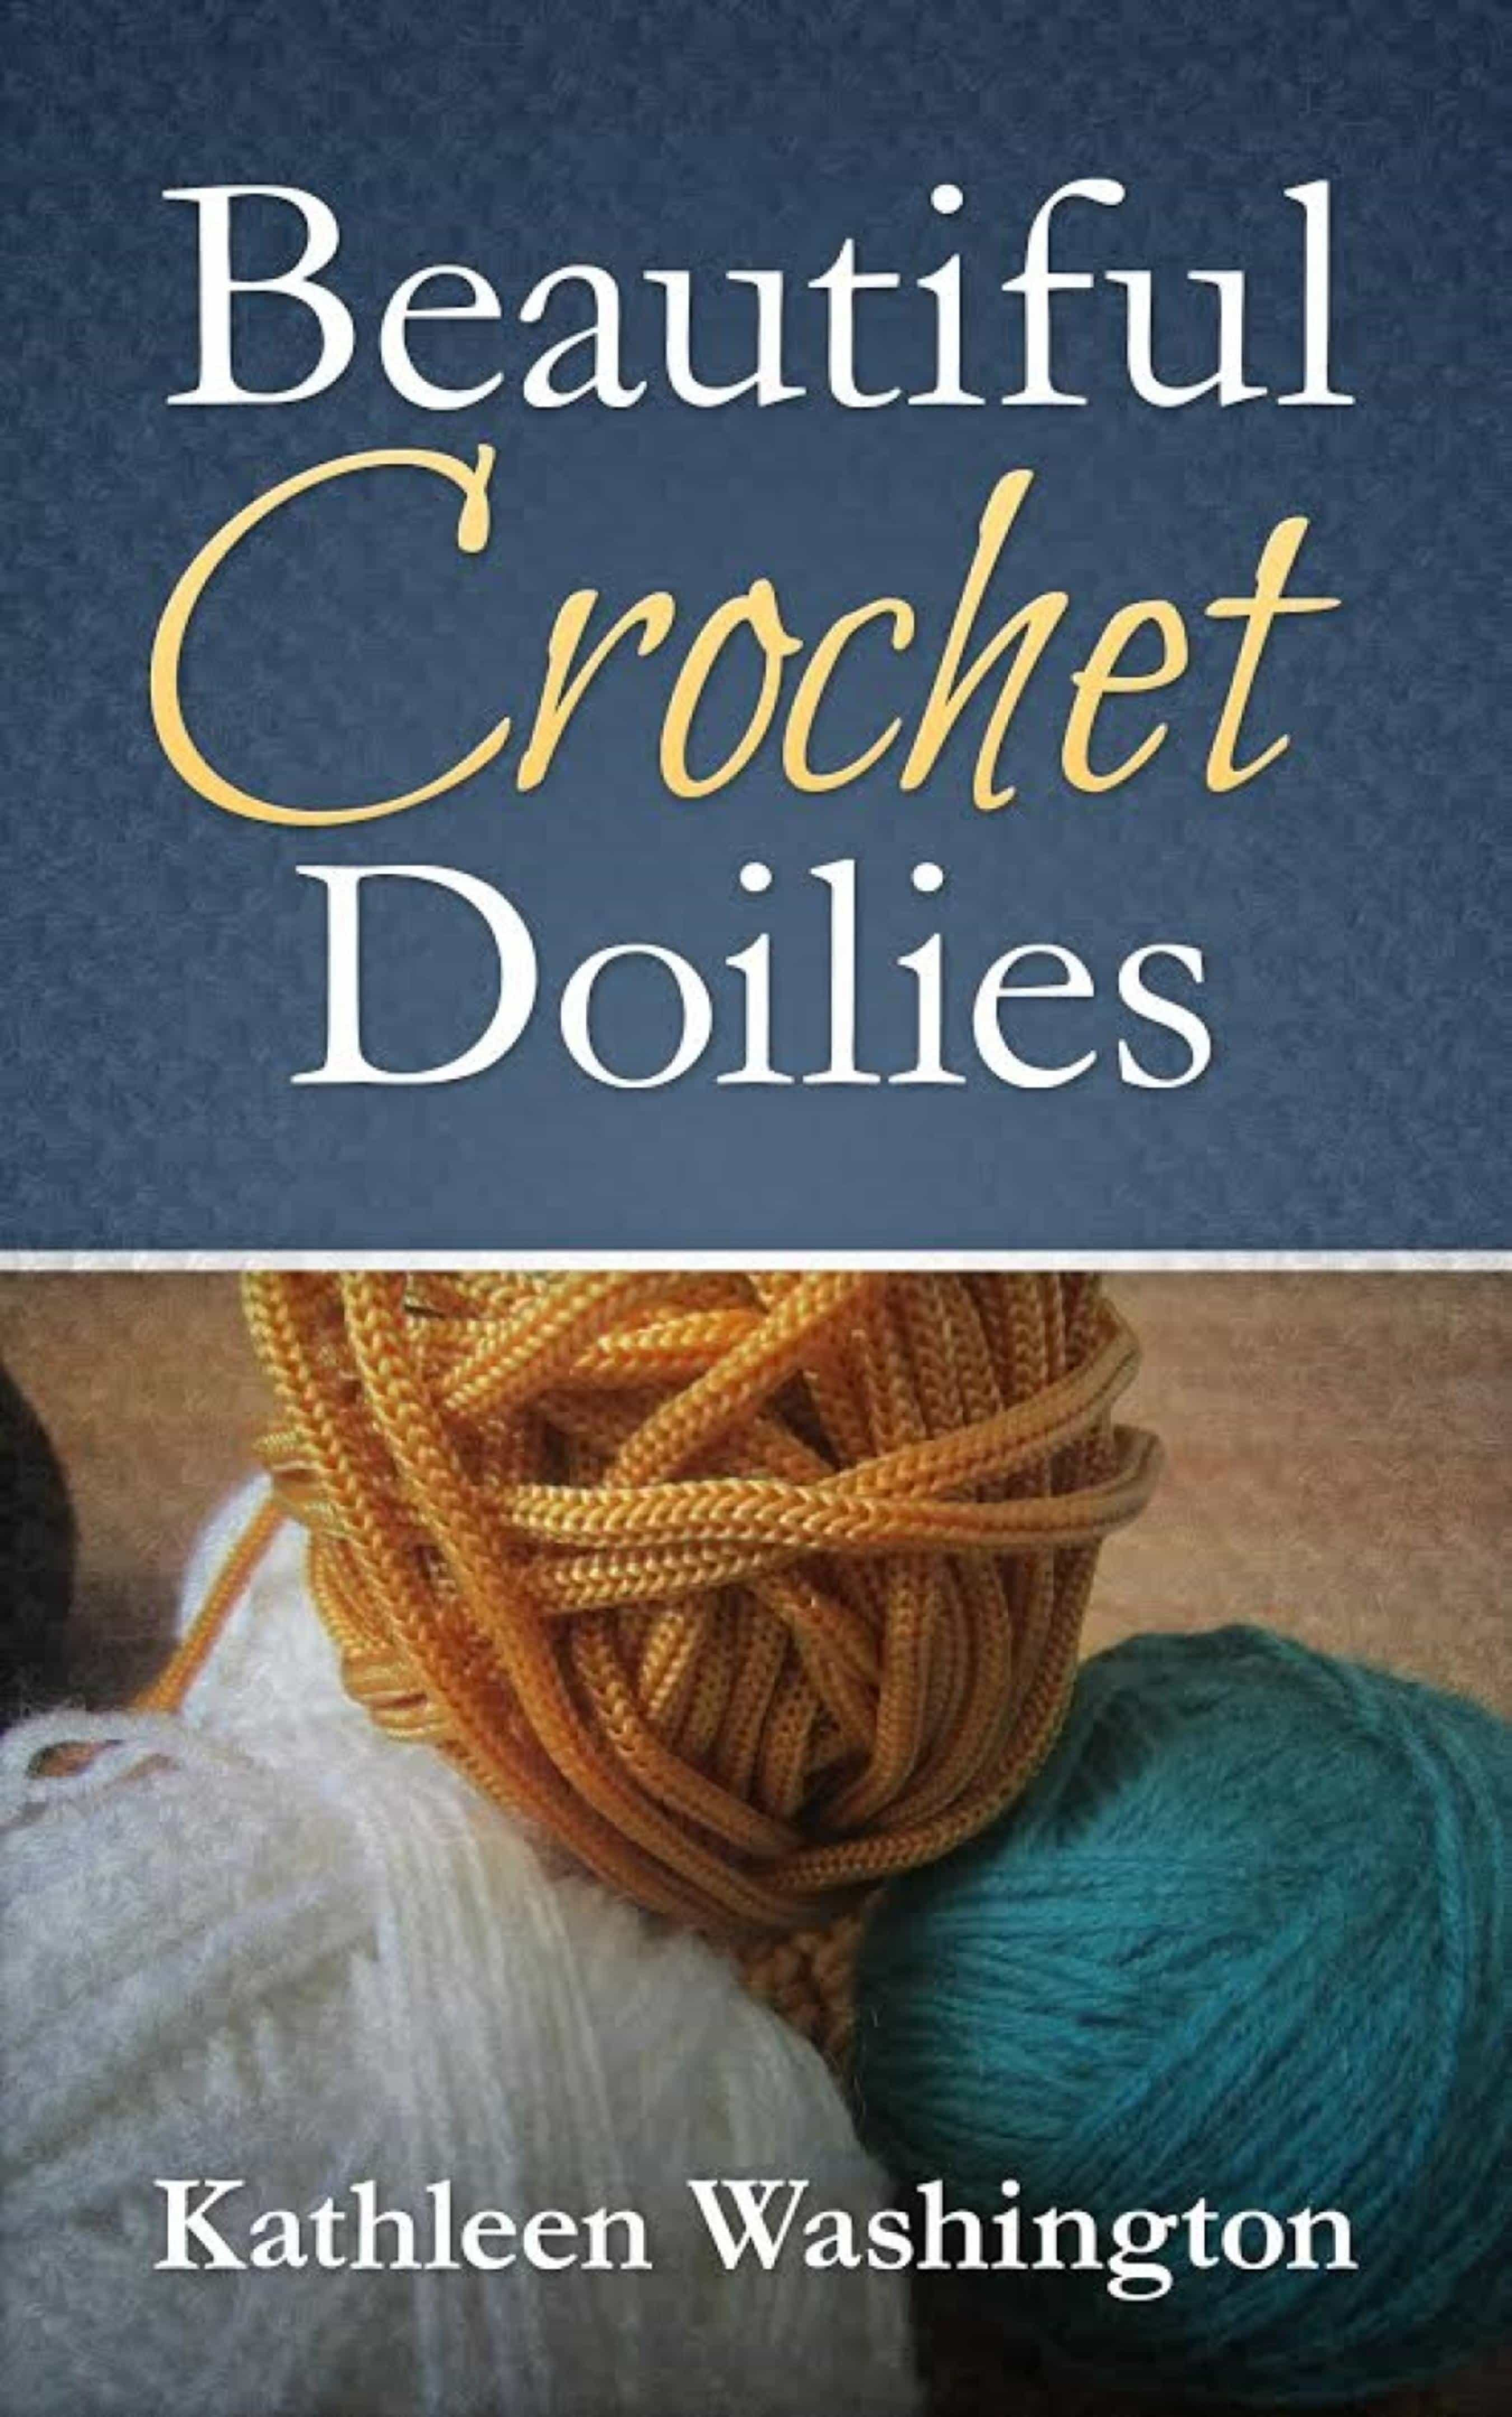 BEAUTIFUL CROCHET DOILIES